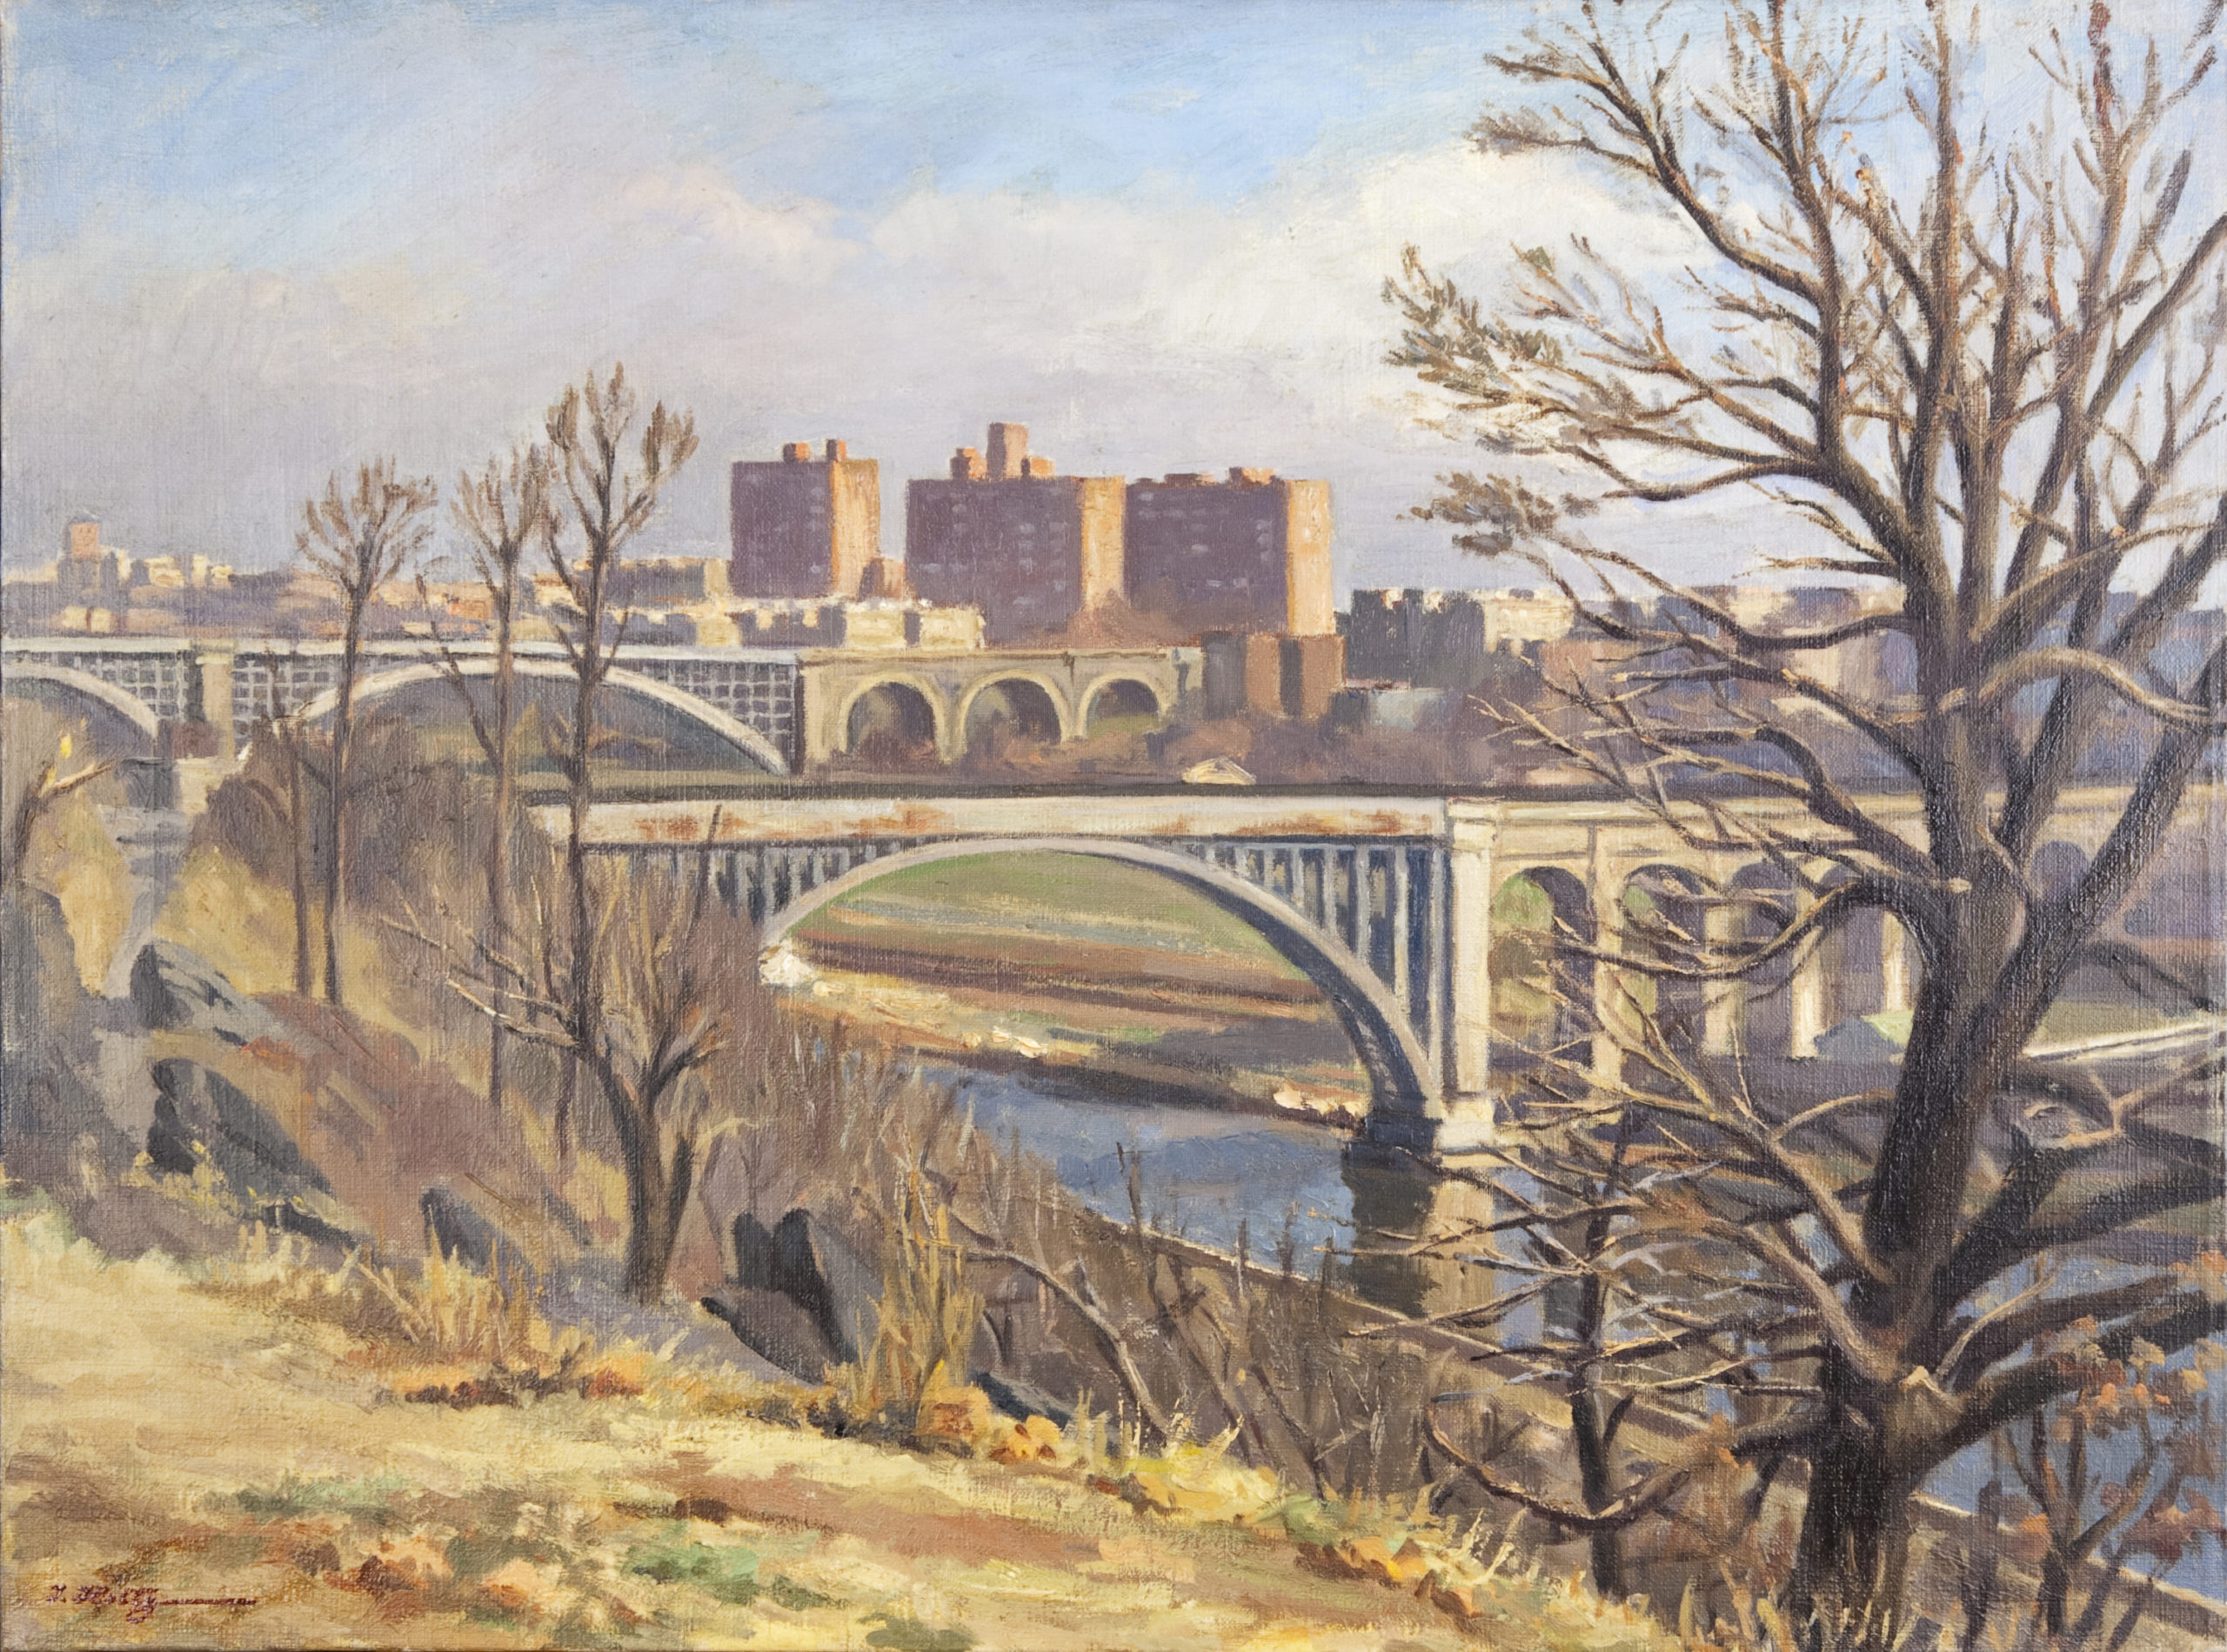 141 Highbridge 1964 - Oil on Canvas - 24 x 18 - No Frame